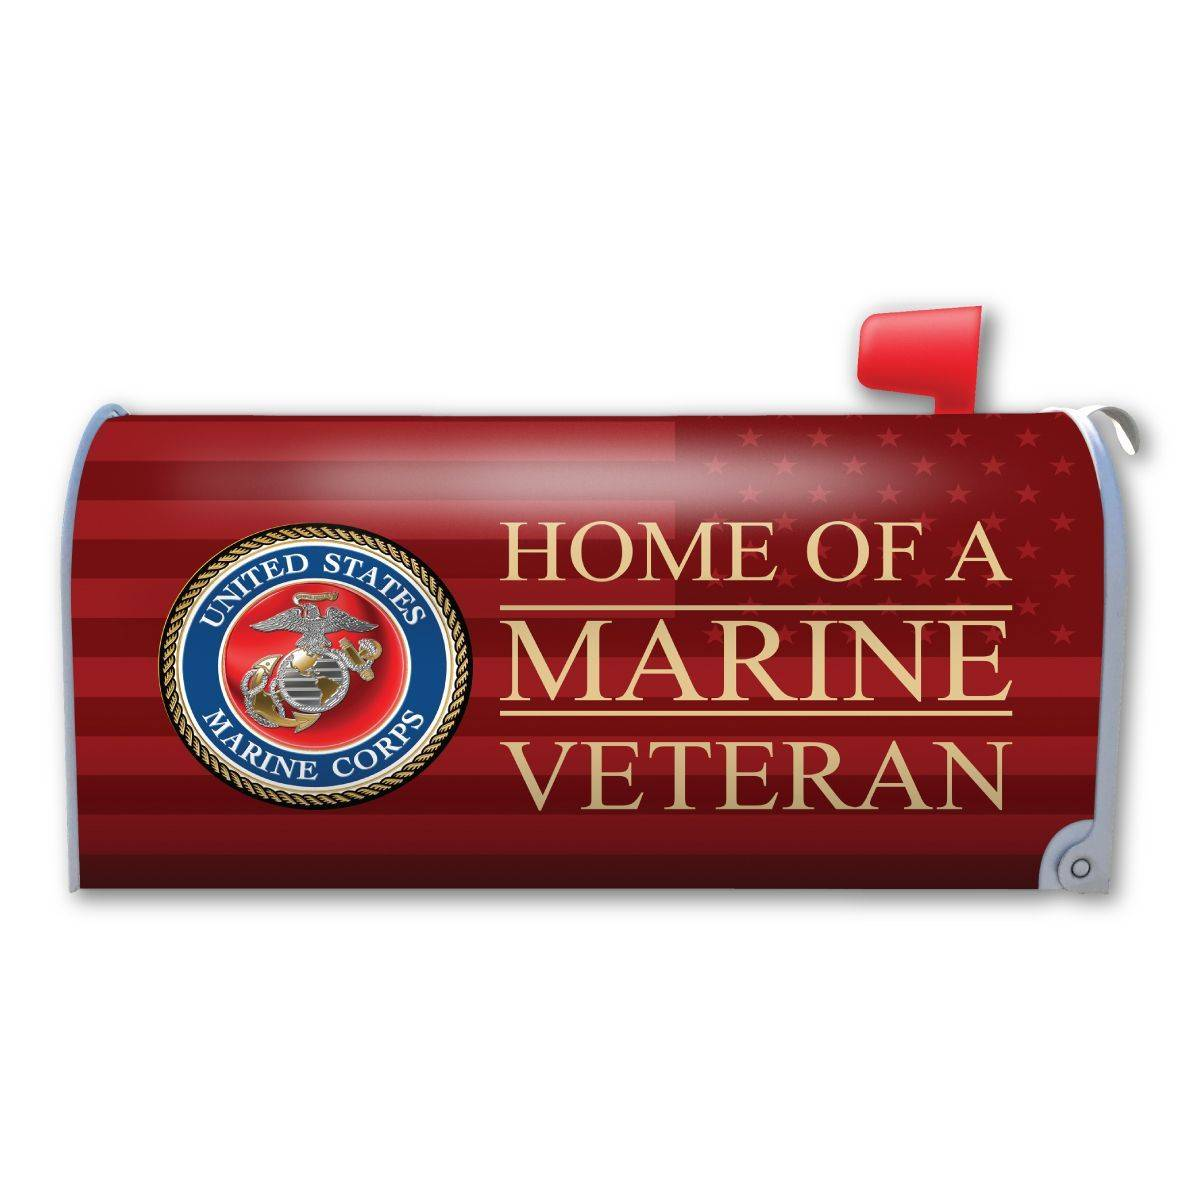 Home of a Marine Veteran Mailbox Cover Magnet